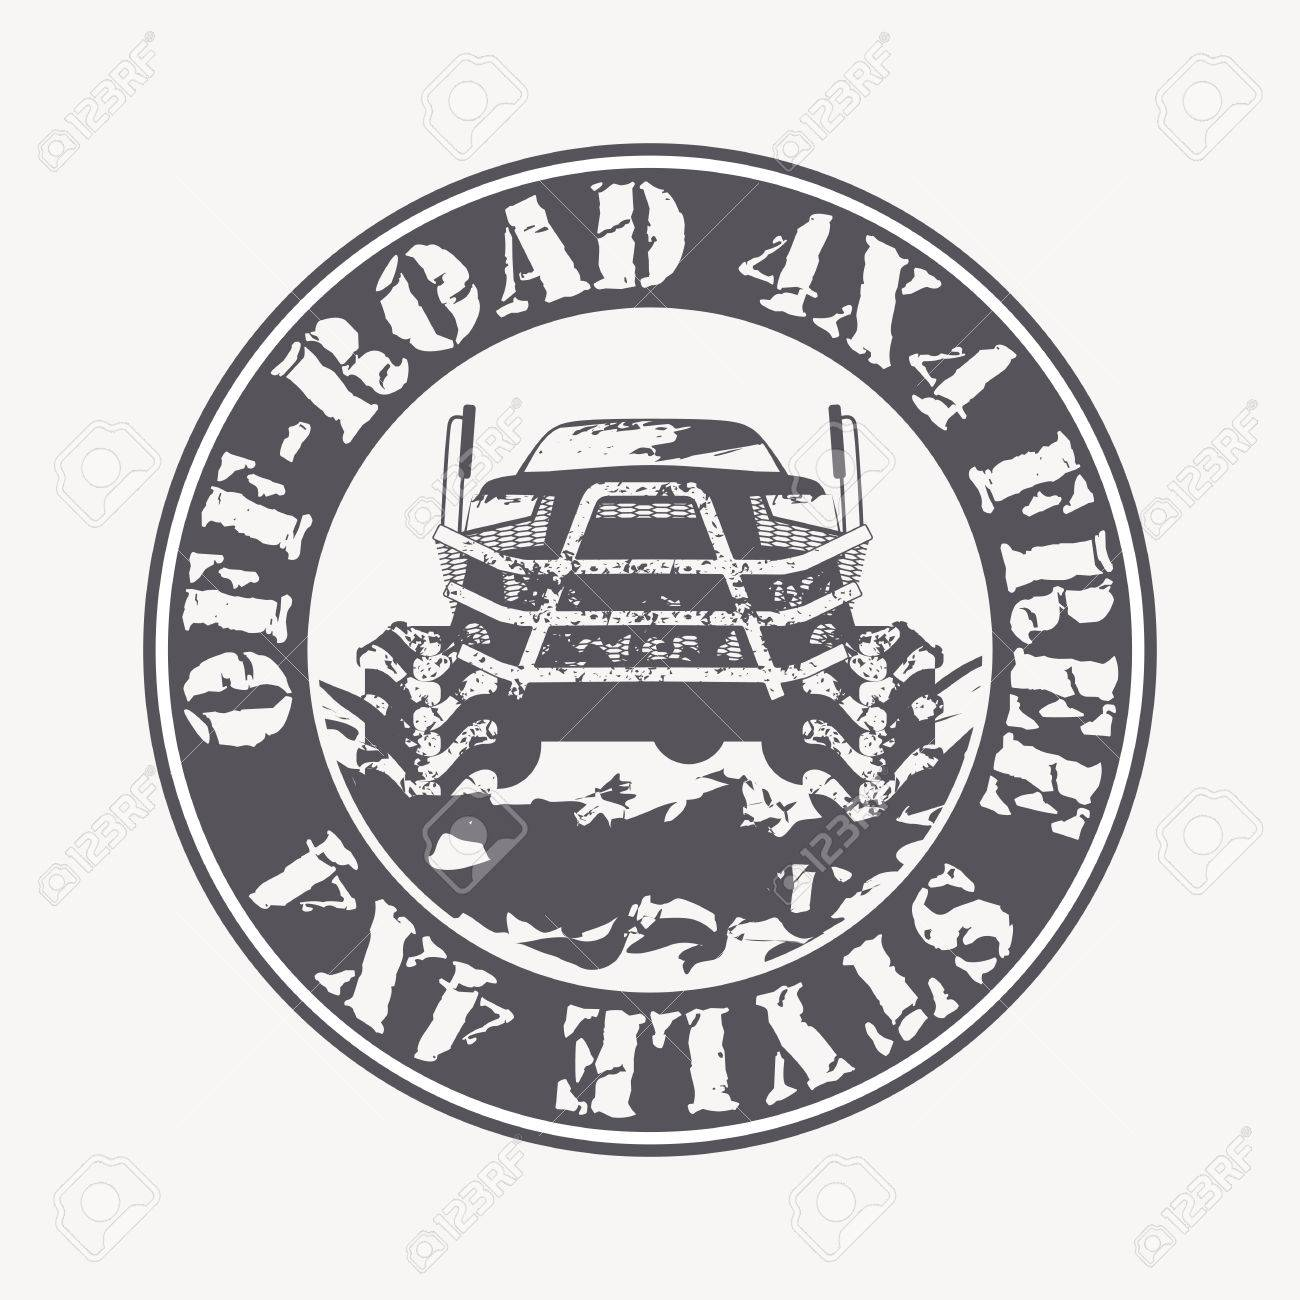 Off Road Vehicle Vector Emblem Off Road Club 4x4 Rally Off Road Extreme Expedition 4x4 Vehicle Illustration Royalty Free Cliparts Vetores E Ilustracoes Stock Image 58826725